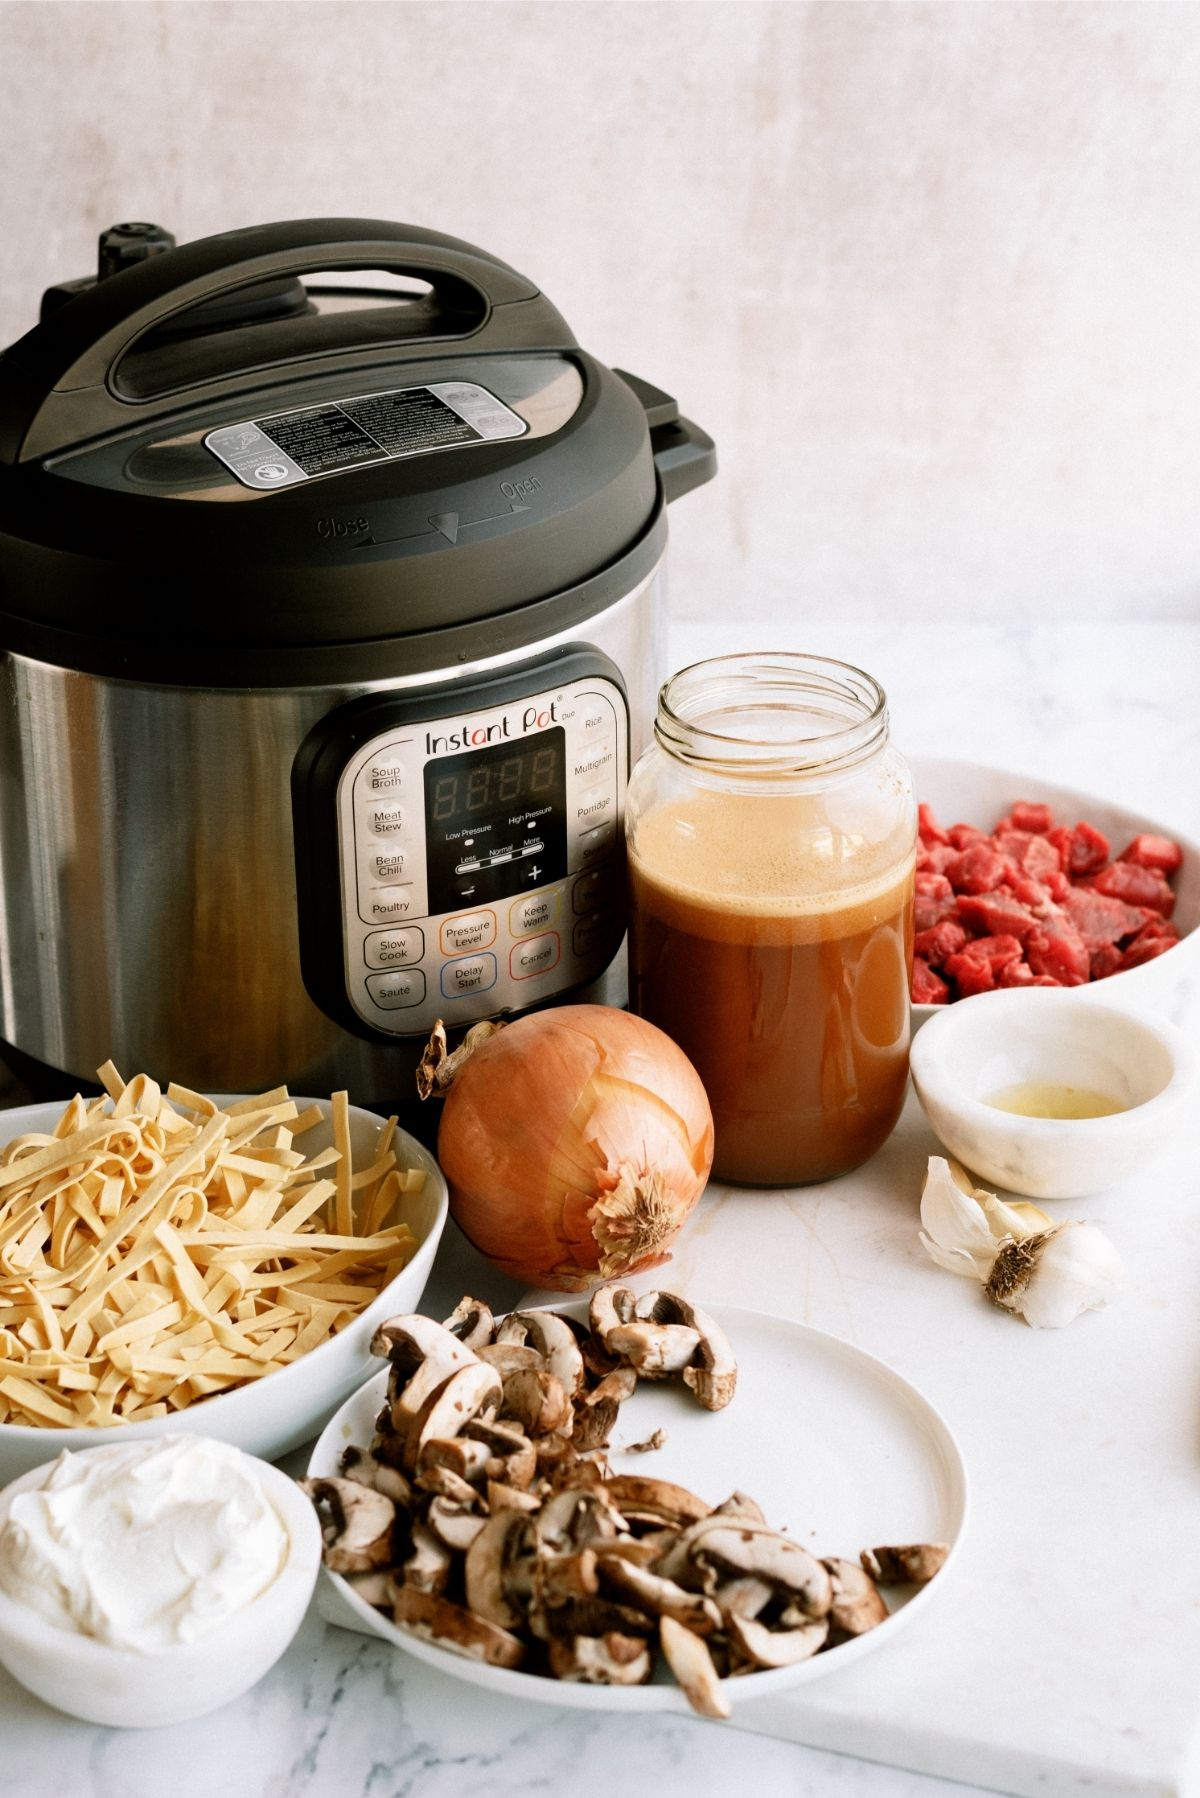 Ingredients for Instant Pot Beef Stroganoff Recipe